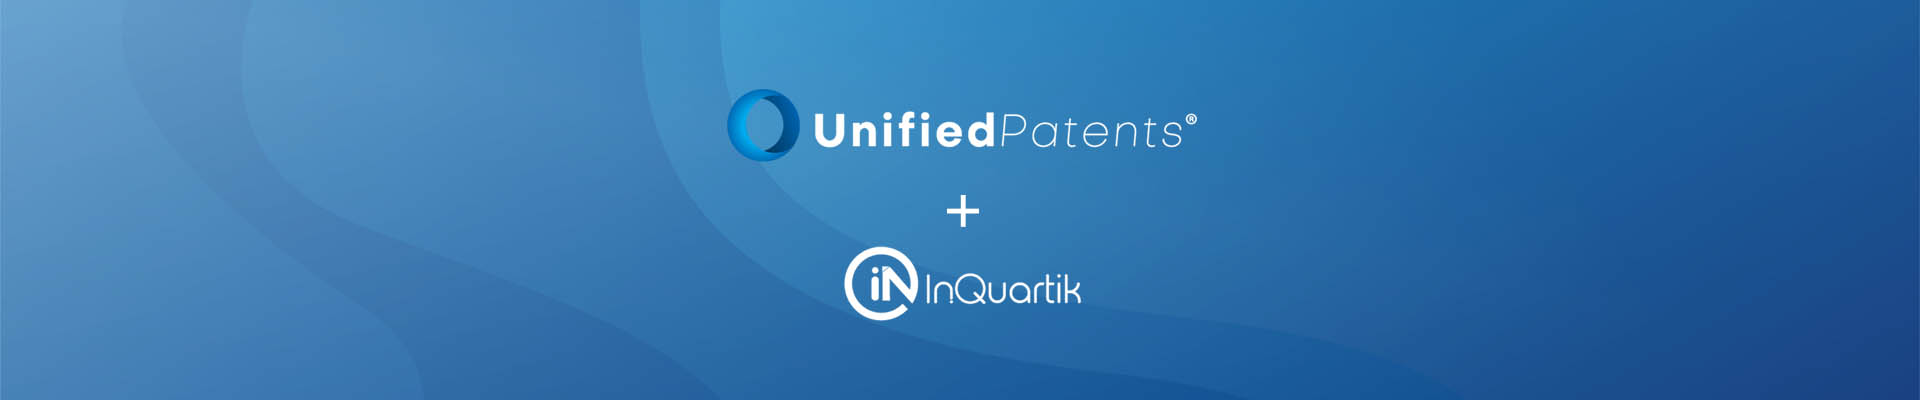 Unified Patents 與孚創雲端聯手合作增強專利品質情報